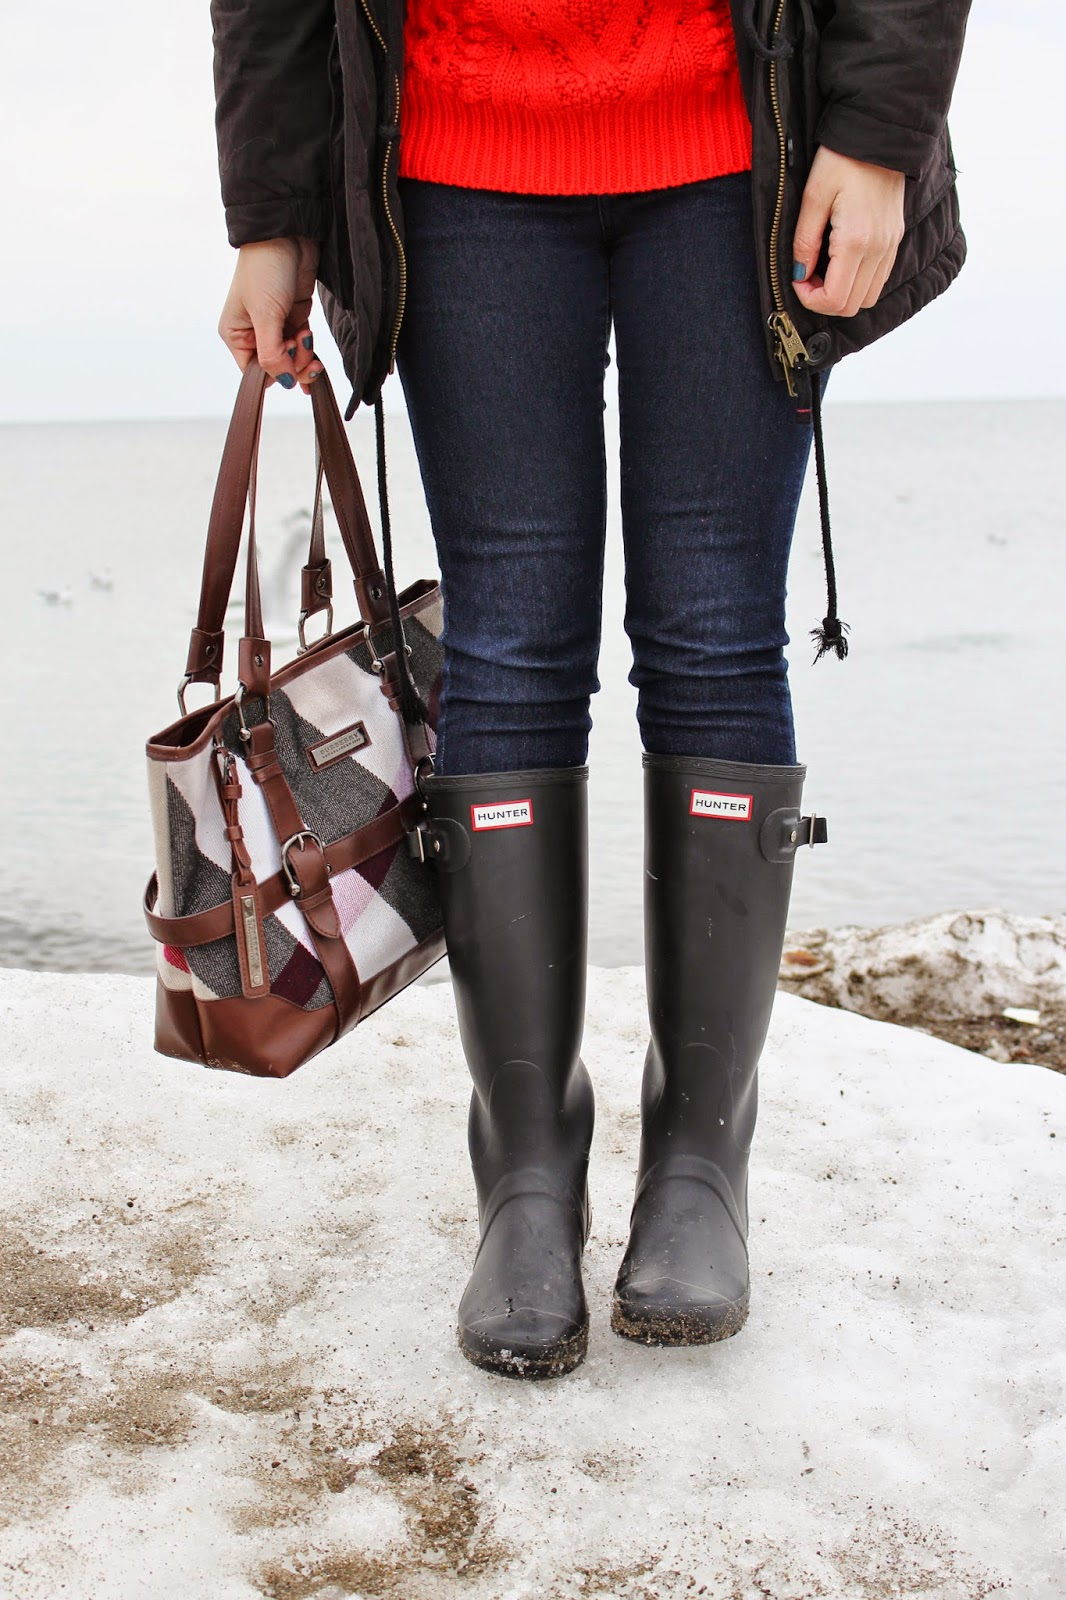 bijuleni - Hunter boots and Burberry purse